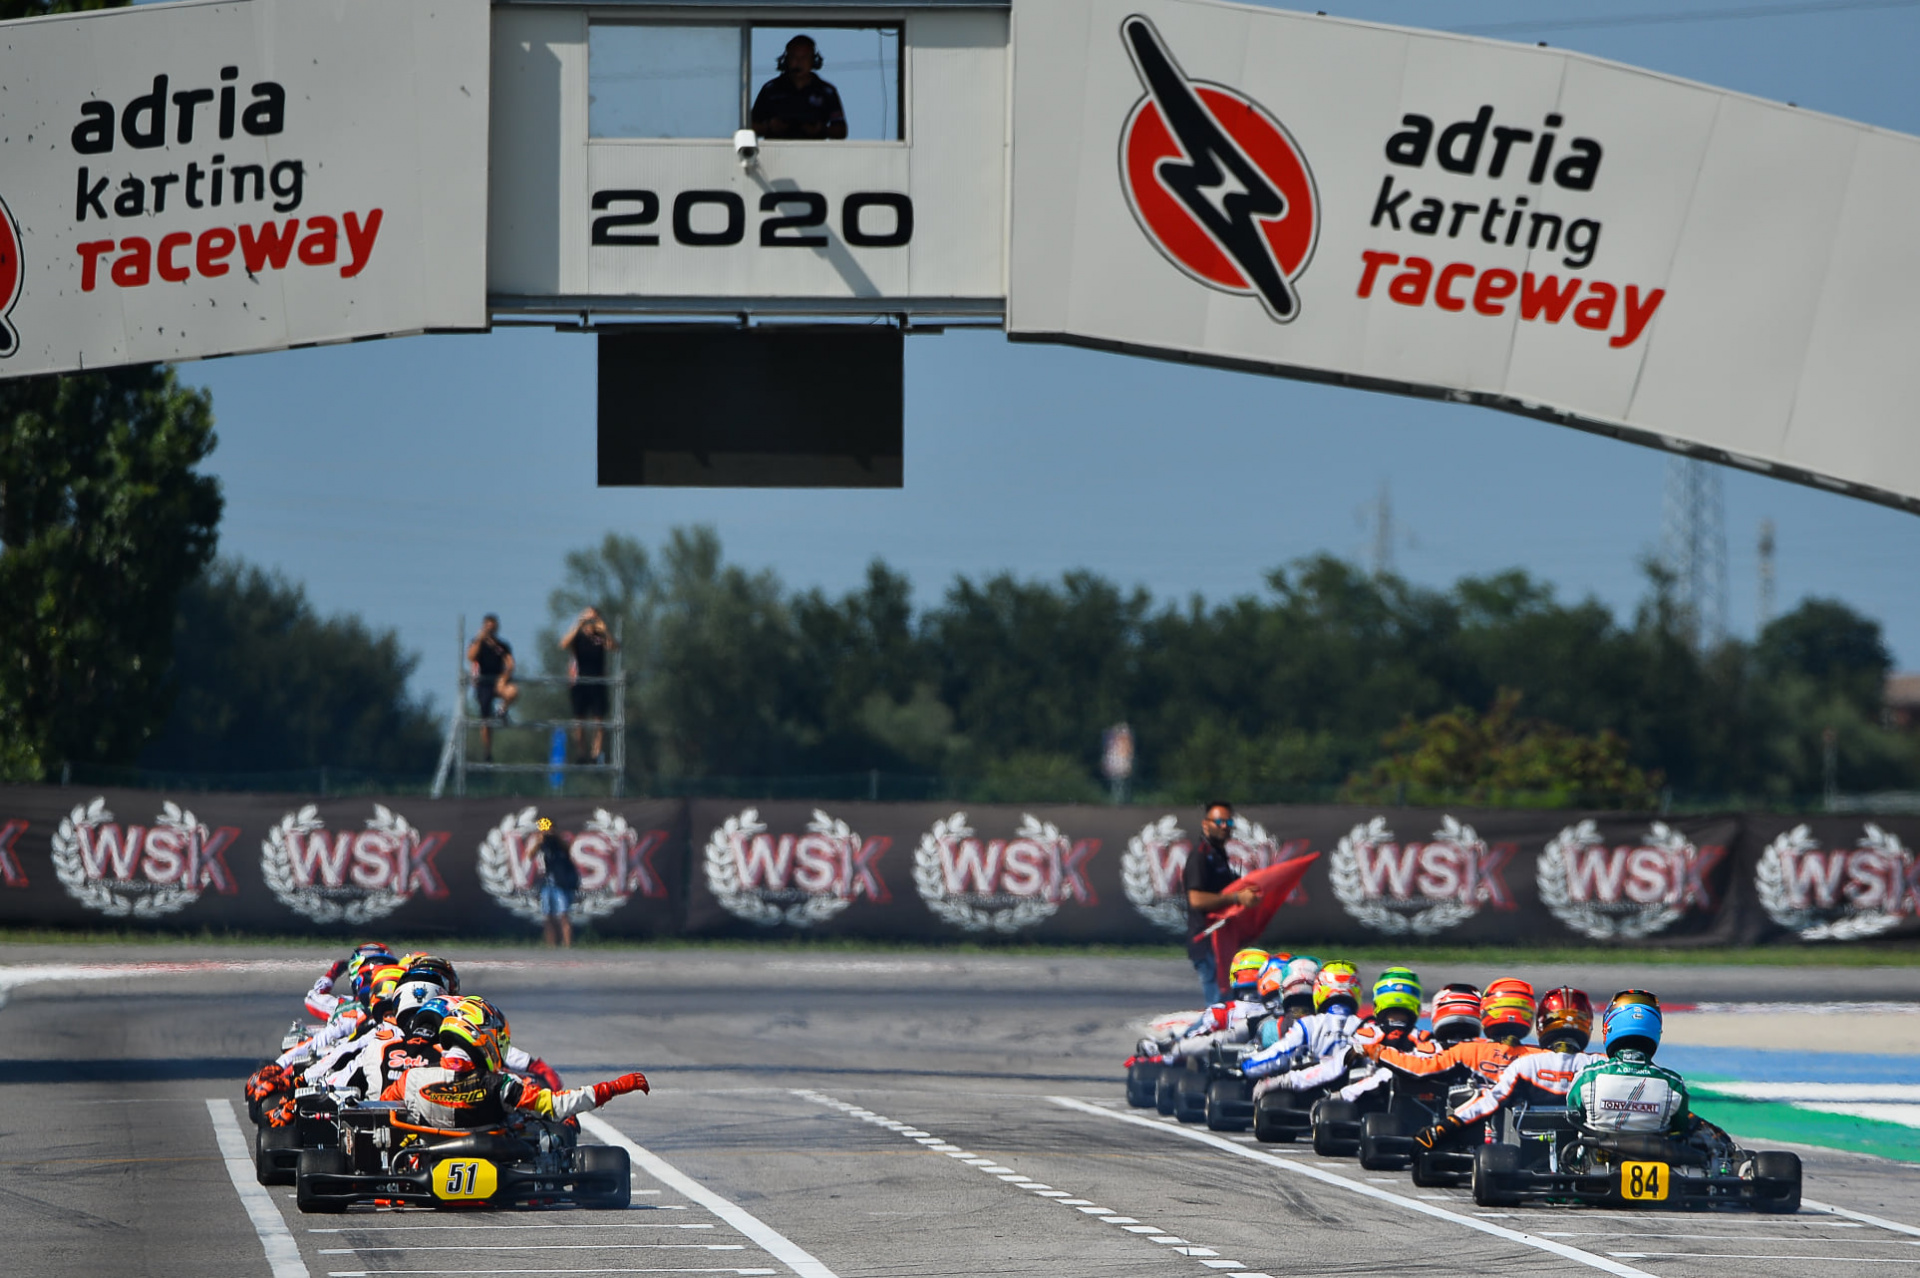 The WSK season starts again from the Open Cup